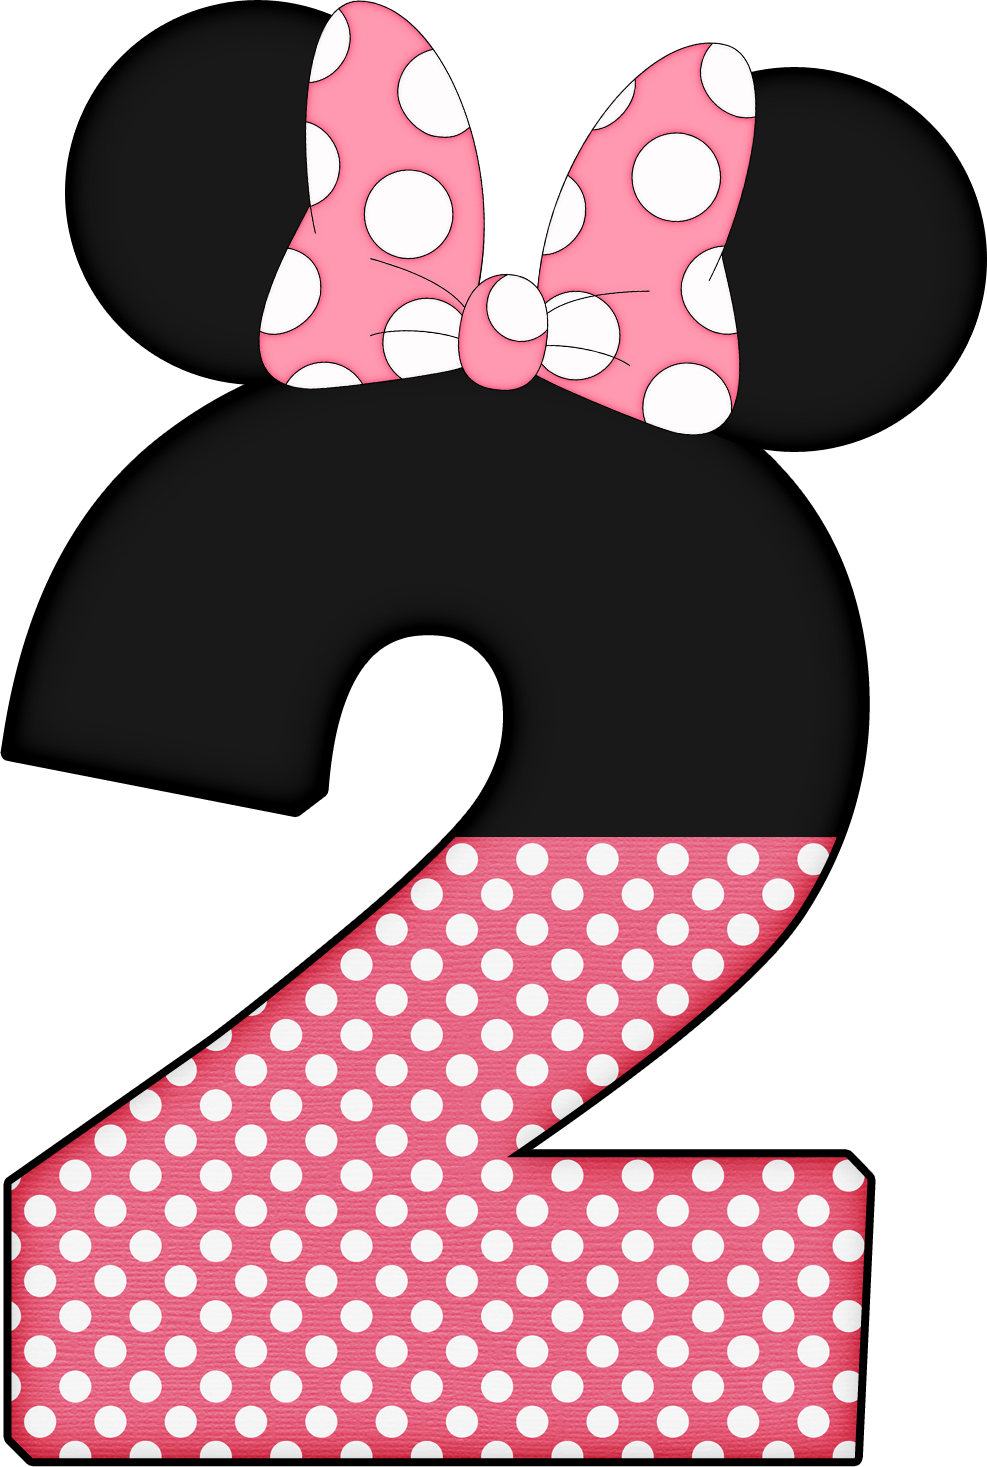 Minnie mouse background polka dots png. Numbers pinterest mice